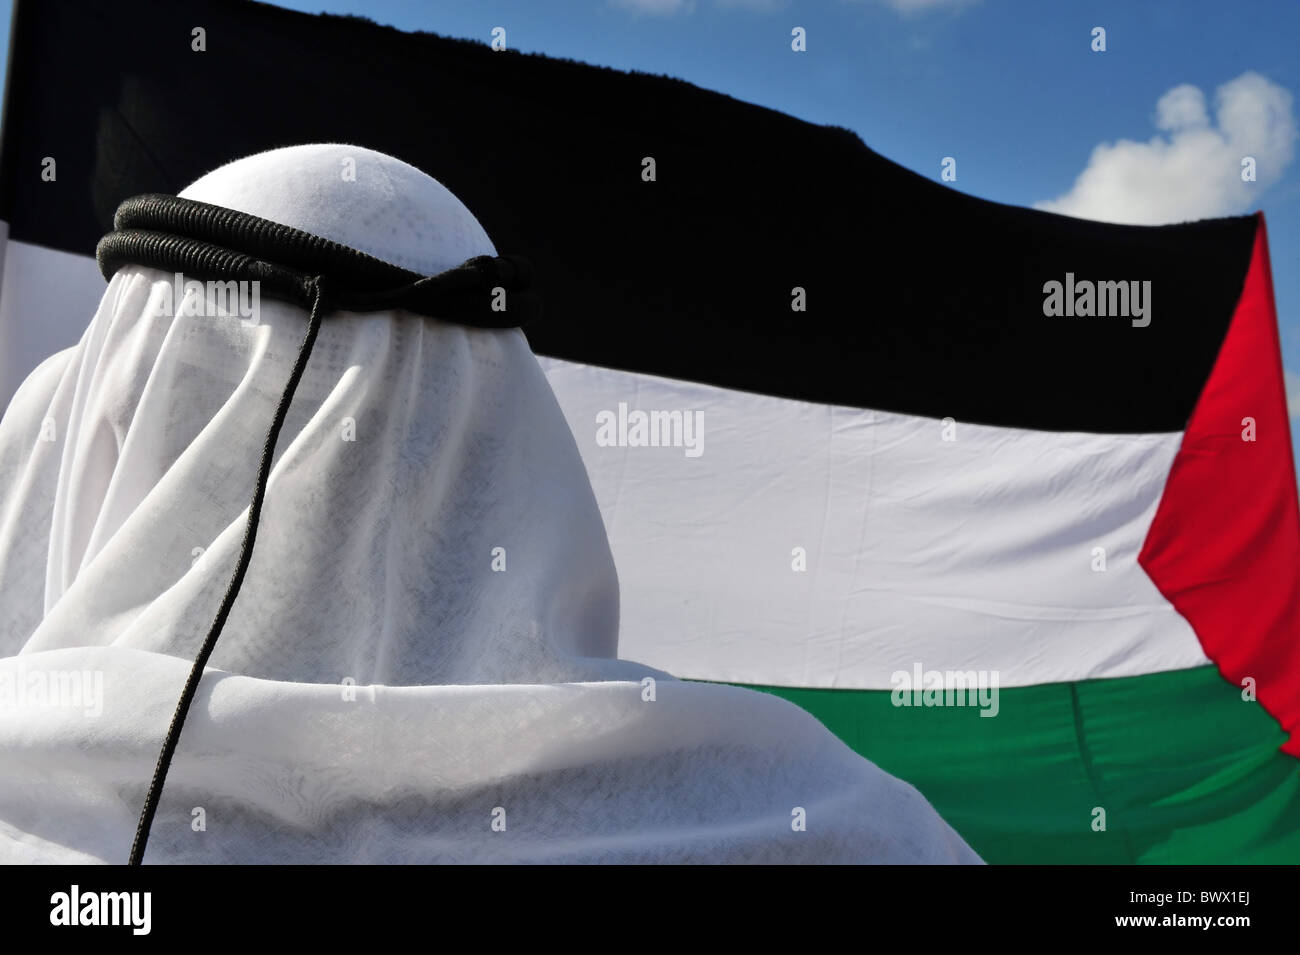 Palestinian people with flag protesting in Israel. - Stock Image